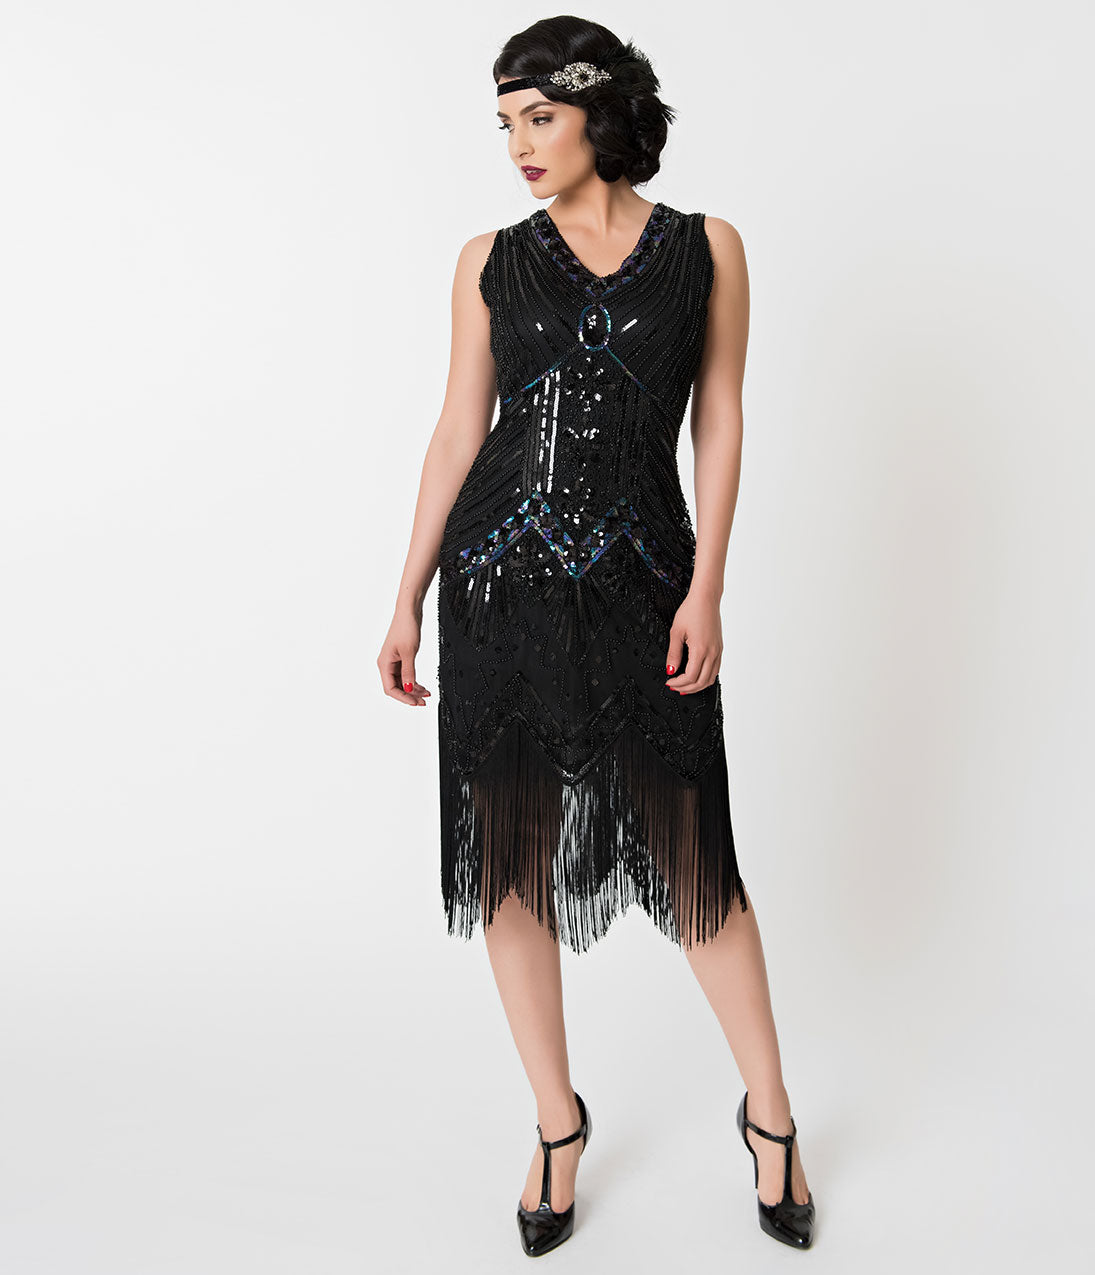 Vintage Evening Dresses and Formal Evening Gowns Unique Vintage 1920S Deco Black Iridescent Sequin Veronique Fringe Flapper Dress $51.00 AT vintagedancer.com